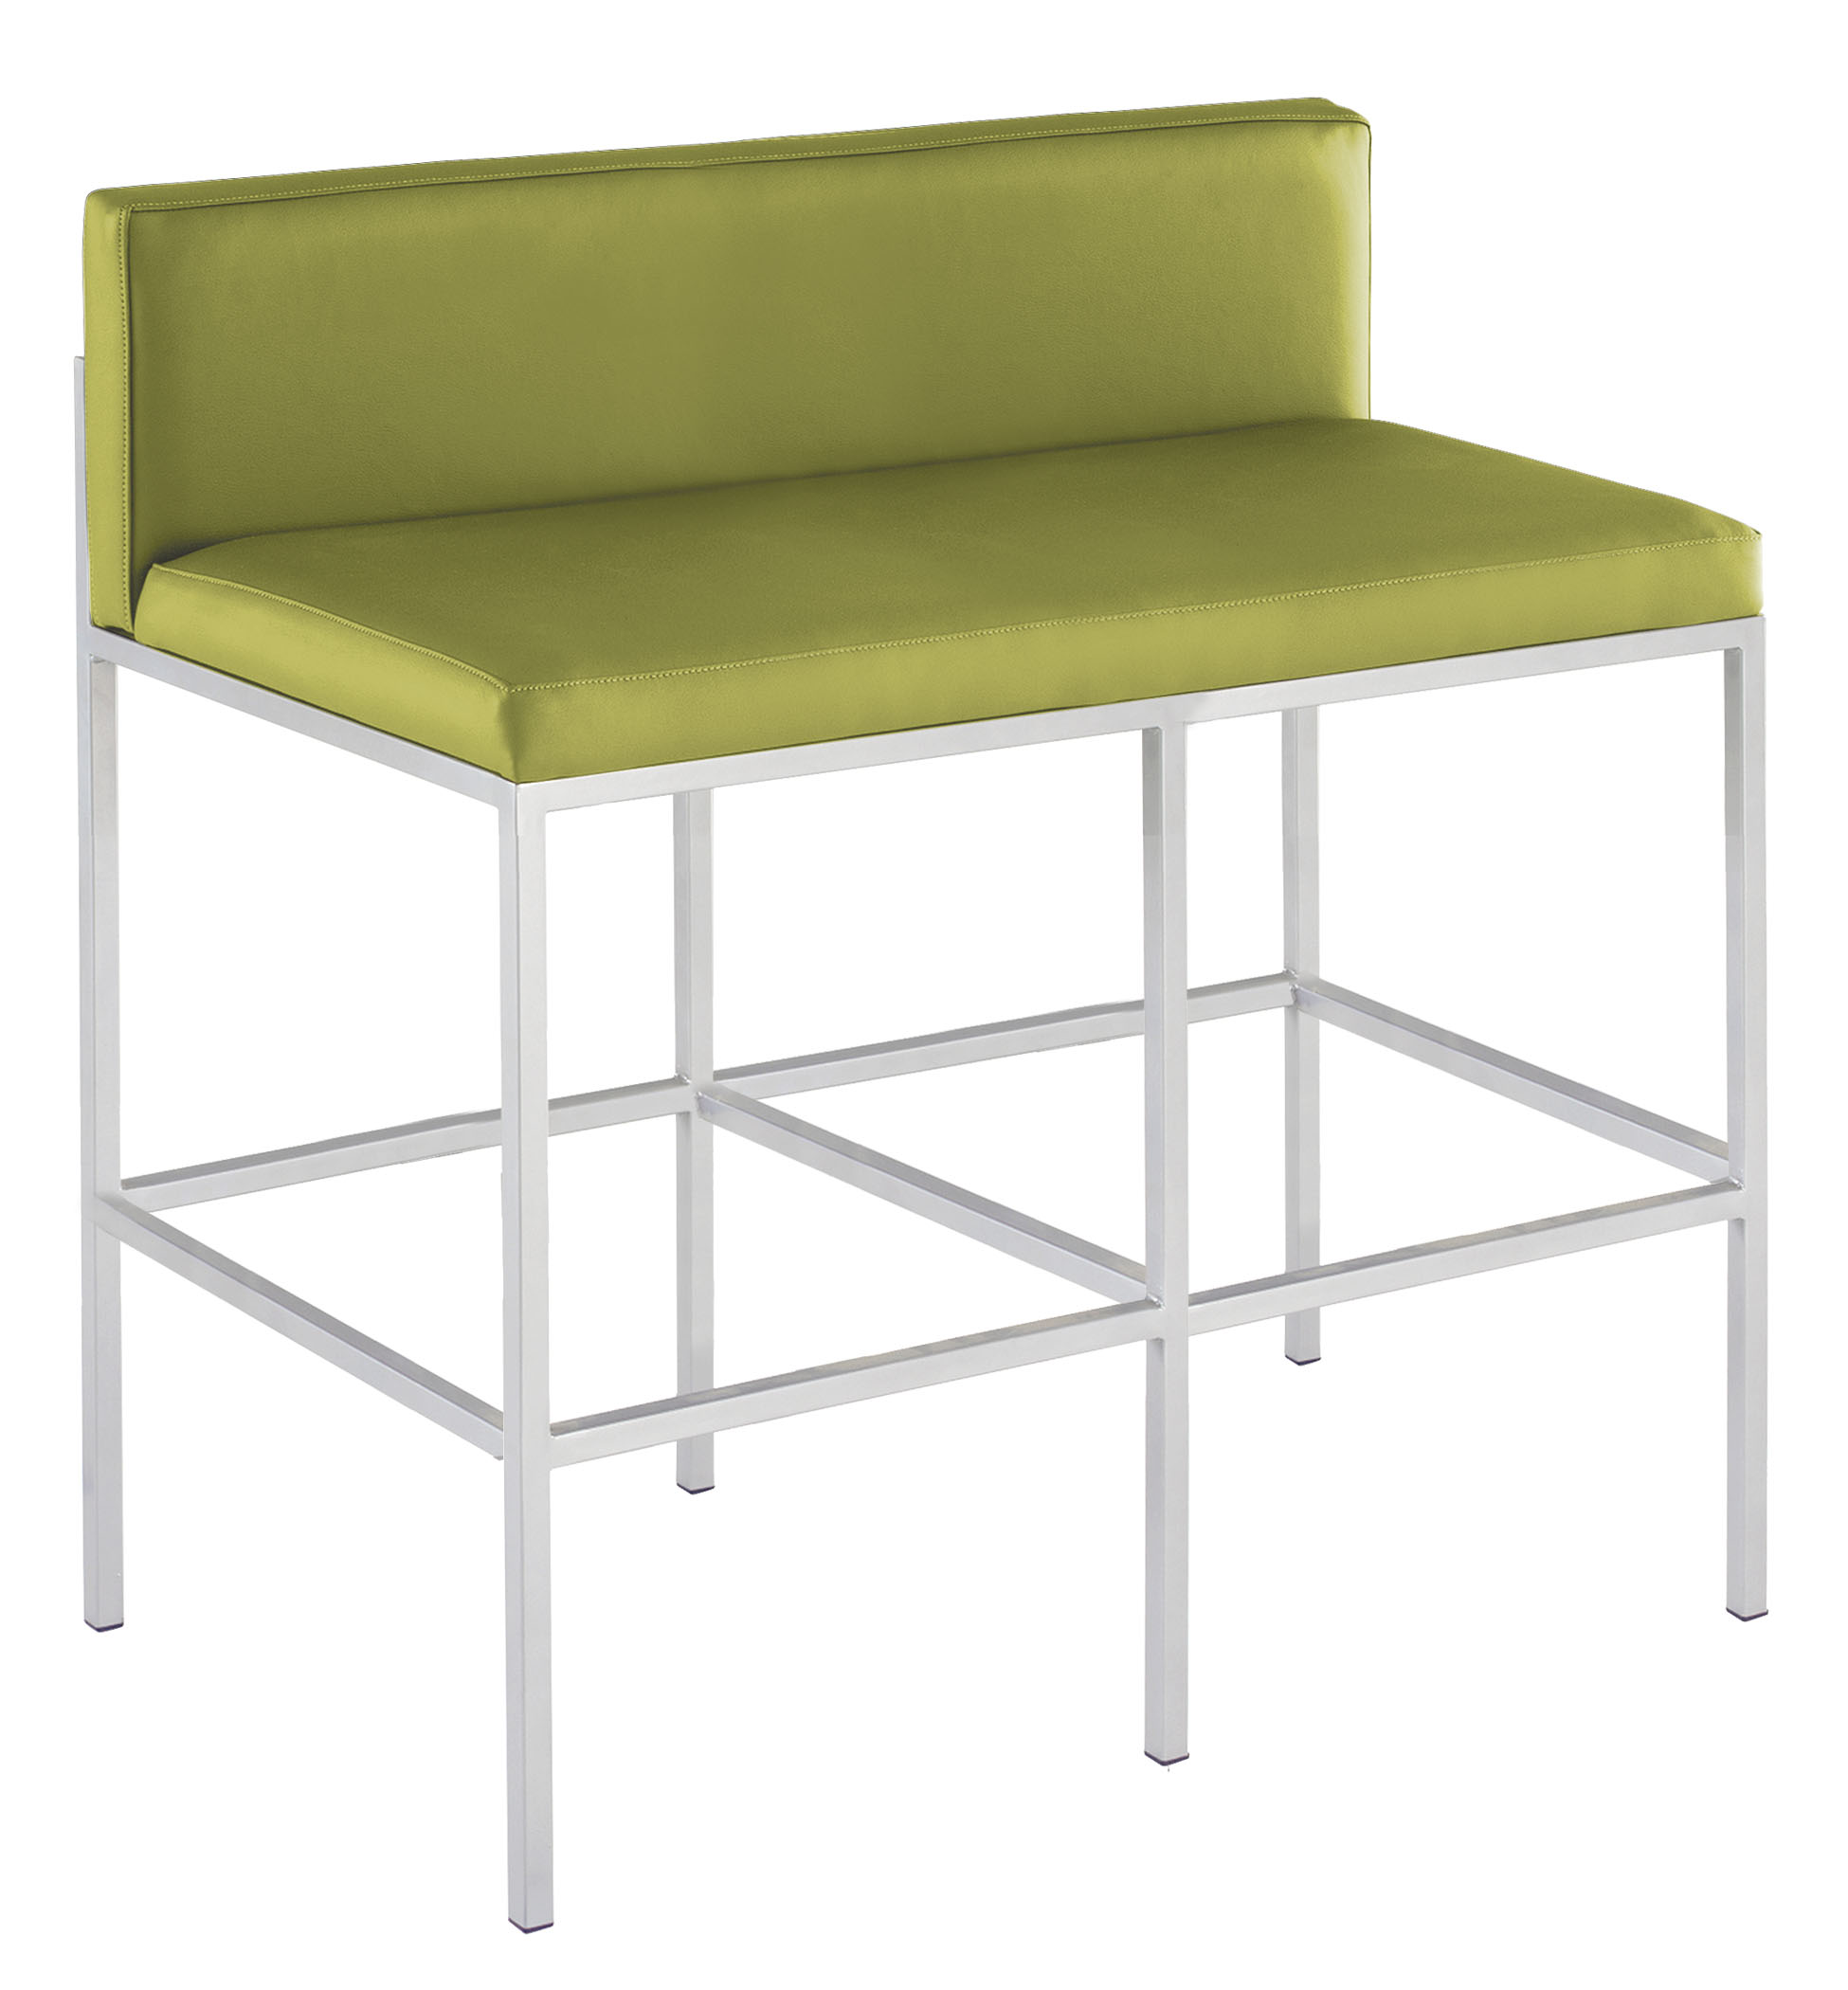 9664 Metal Bench Counter Ht